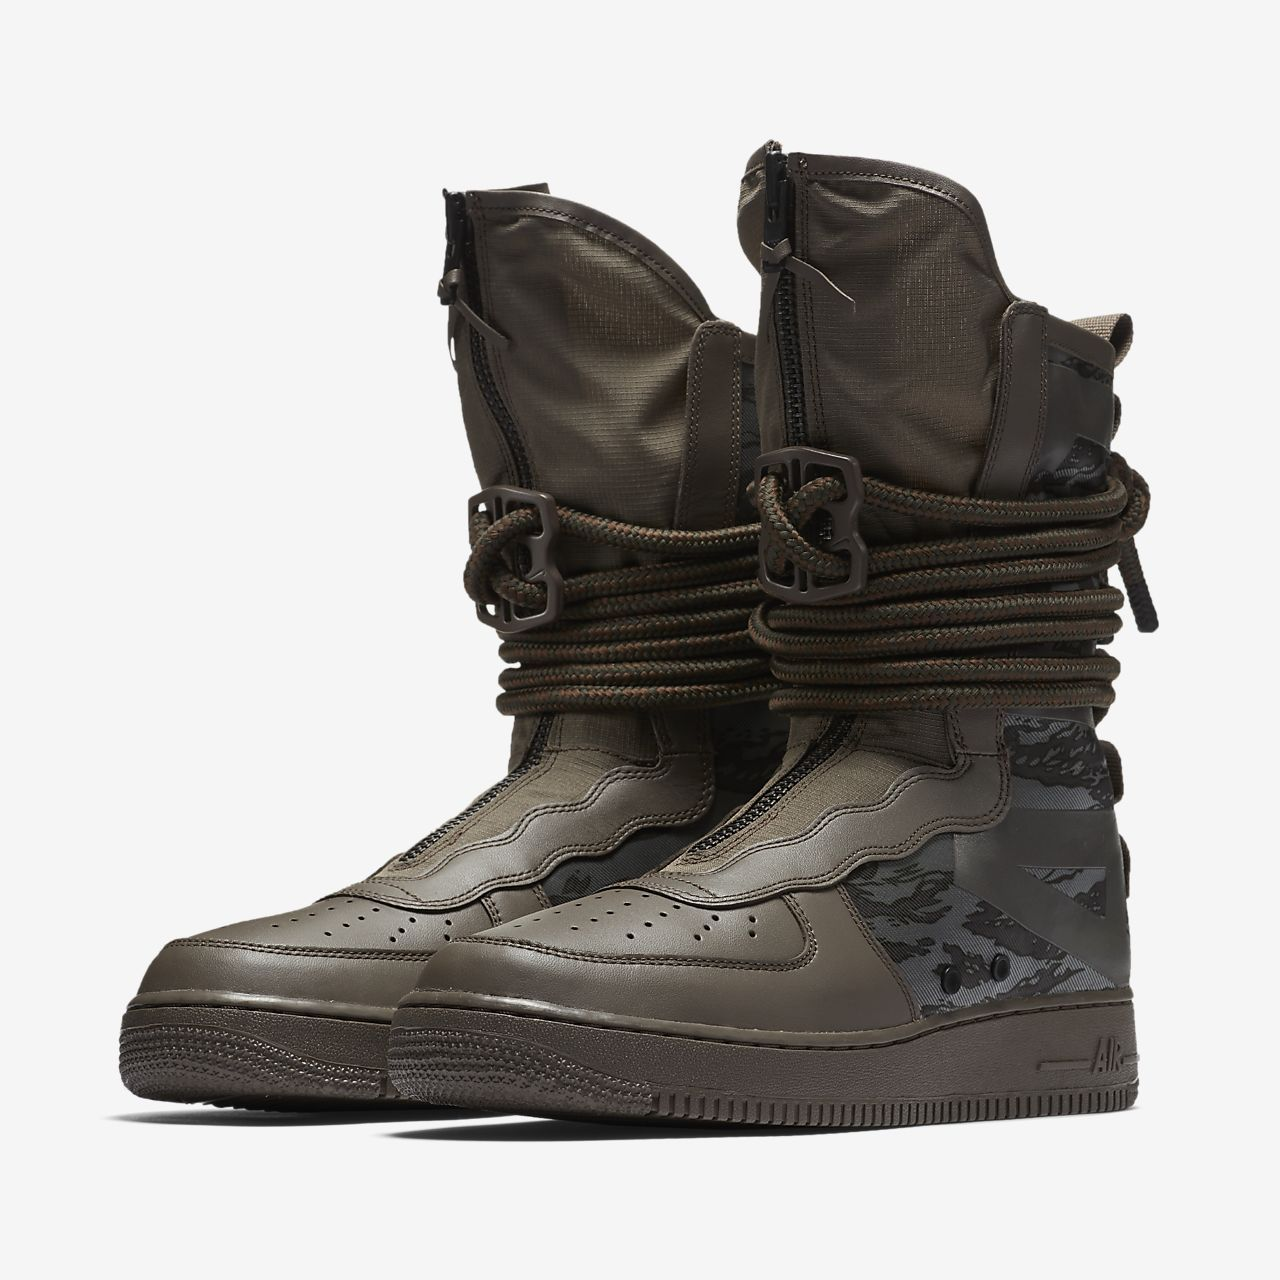 Nike SF Air Force 1 Hi Men's Boot Boots, Boots men, Camo